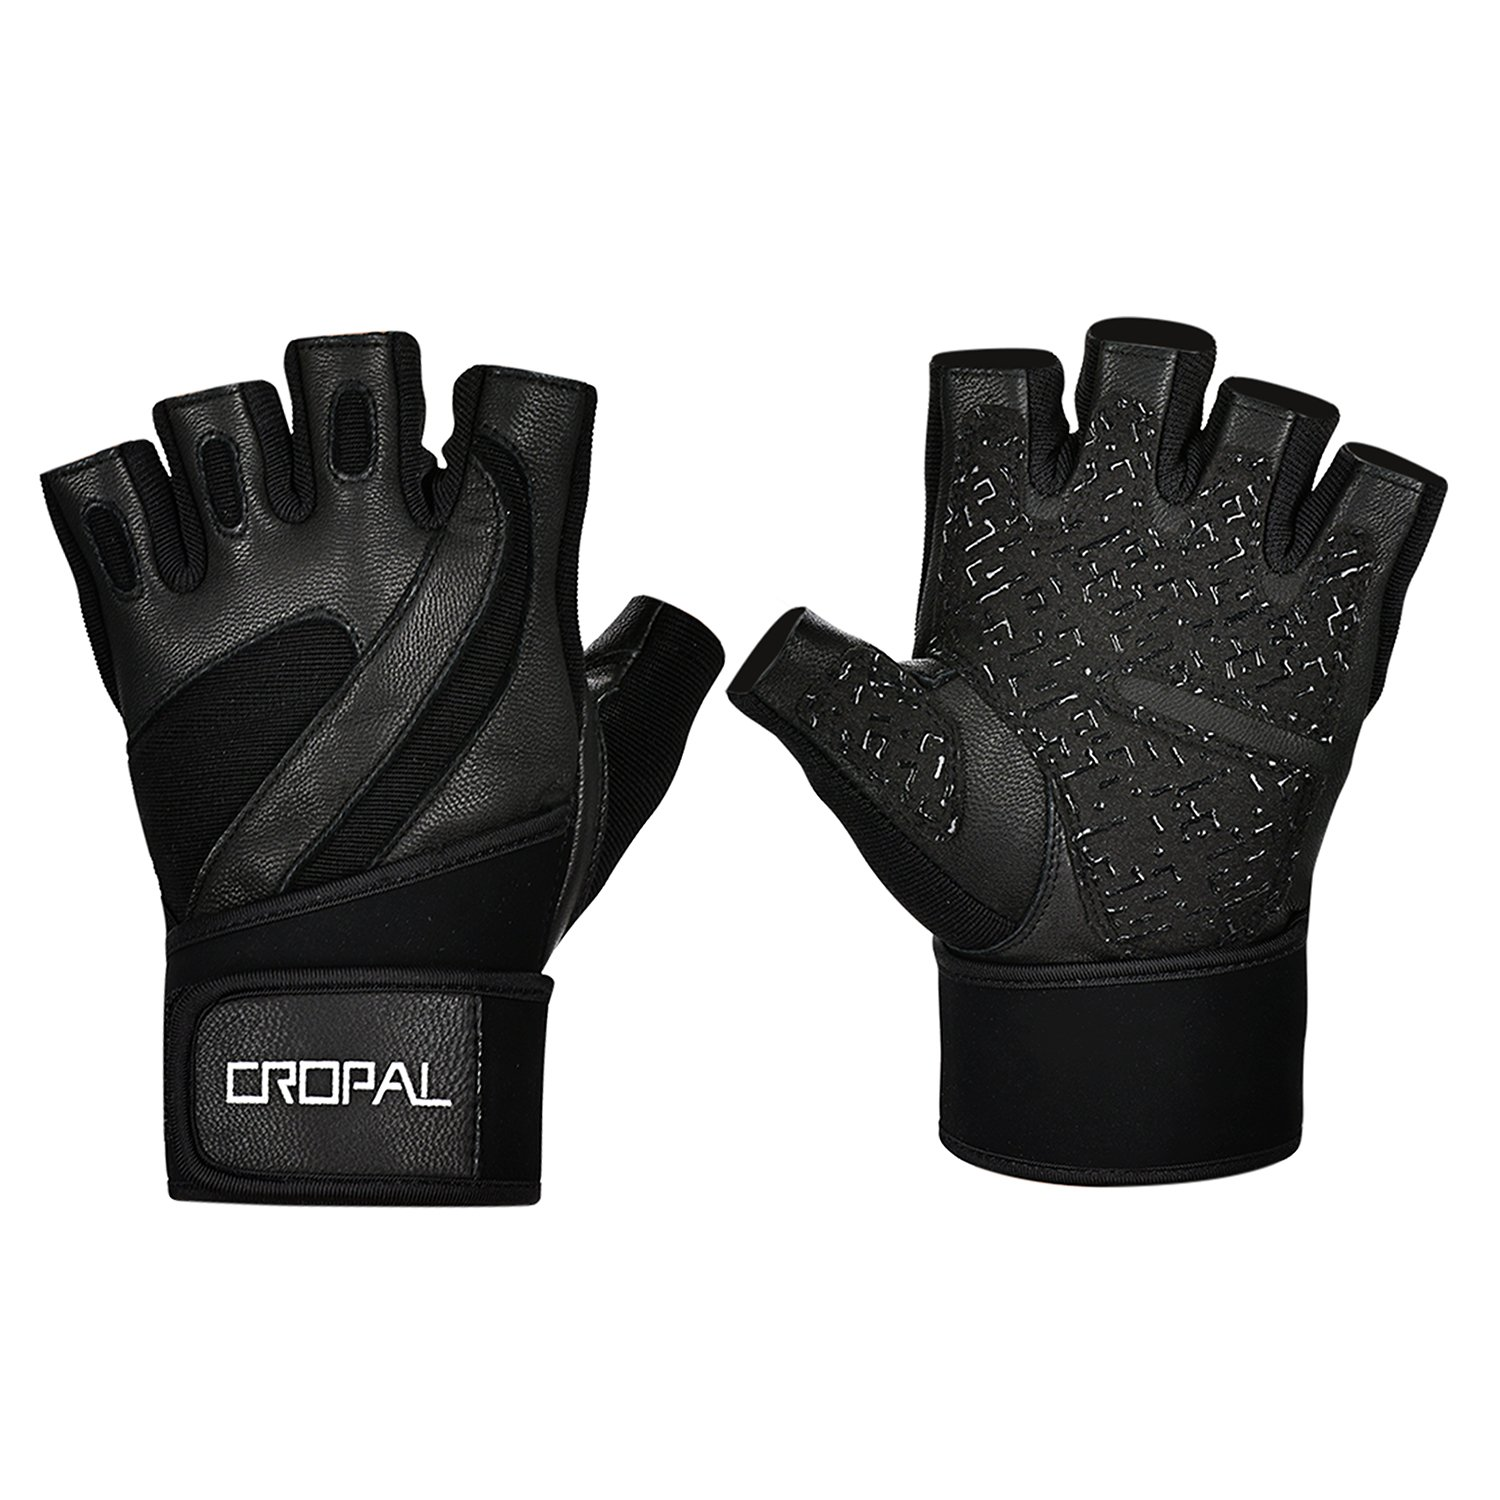 Cropal Weight Lifting Gloves